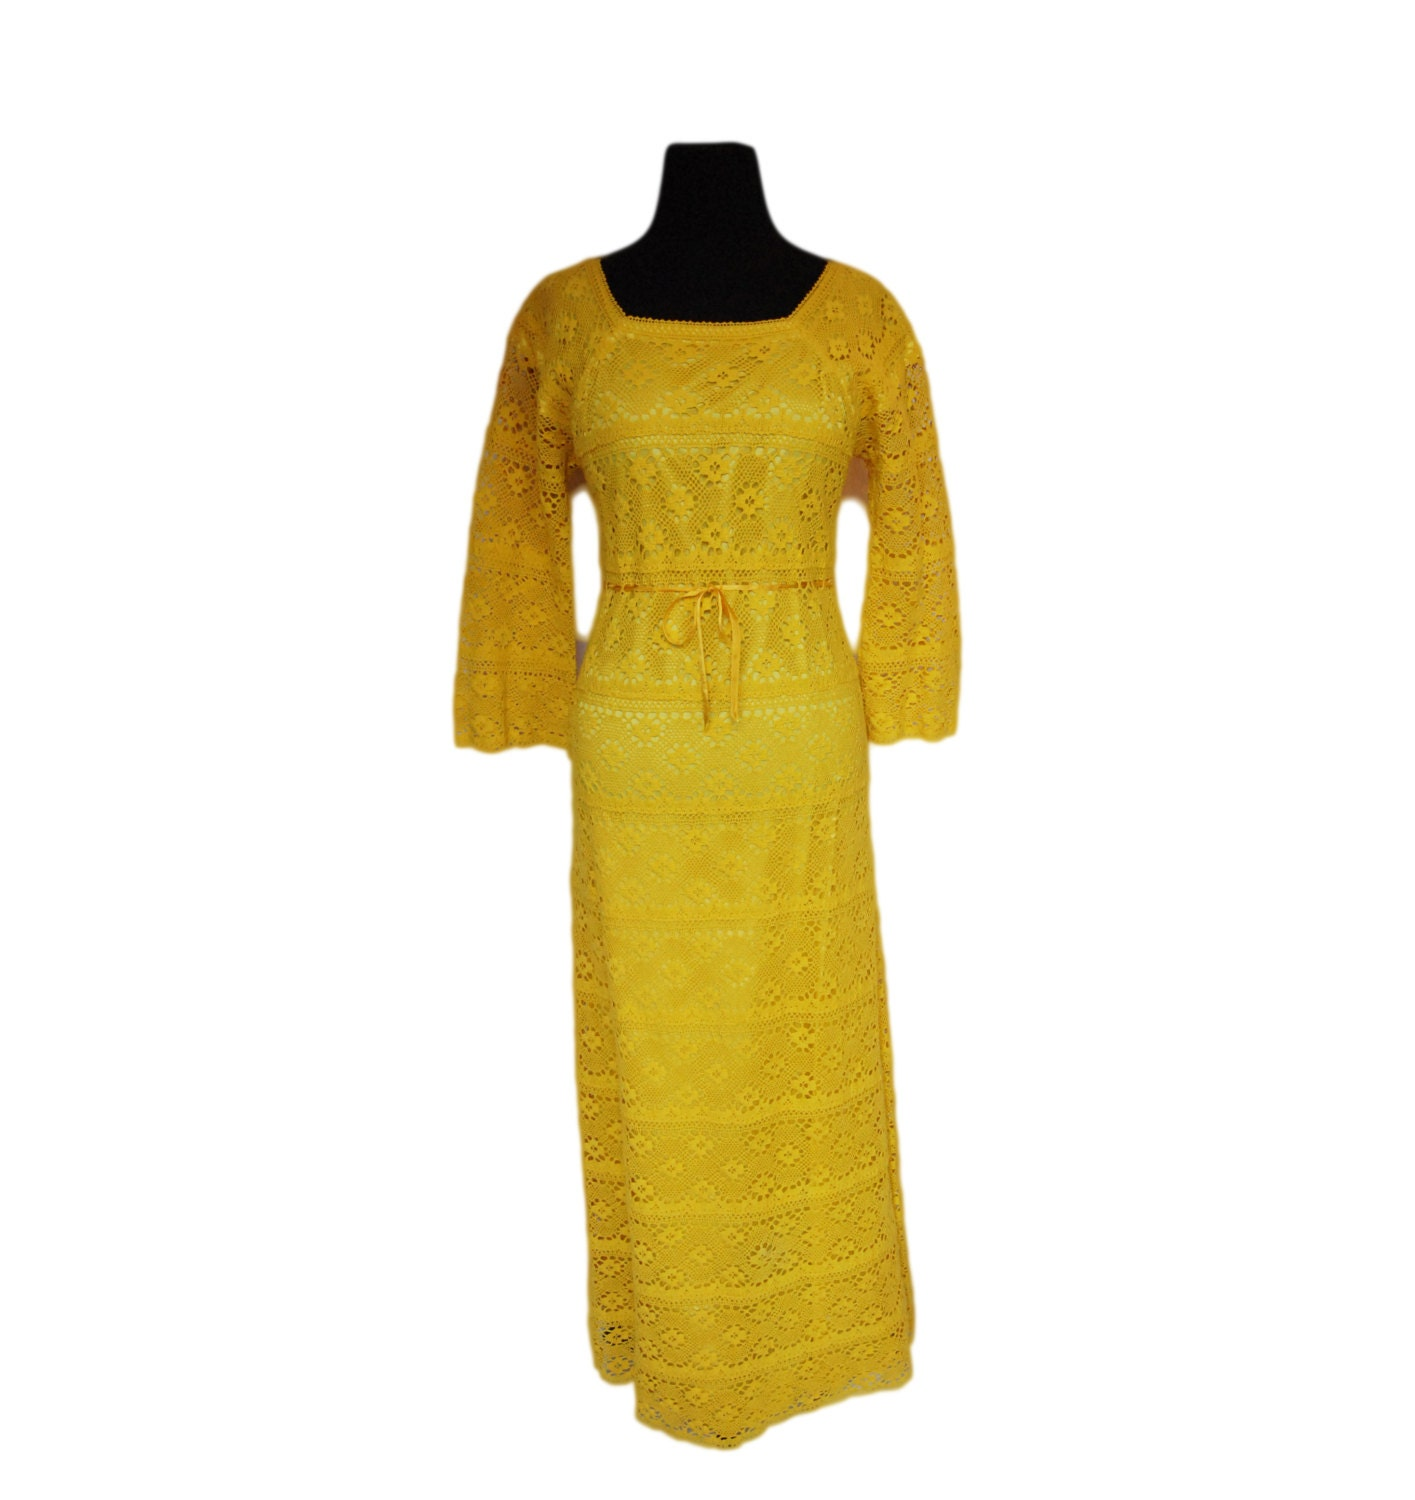 Vintage 1960s Mexican Wedding Dress Bright Yellow Hand Crochet